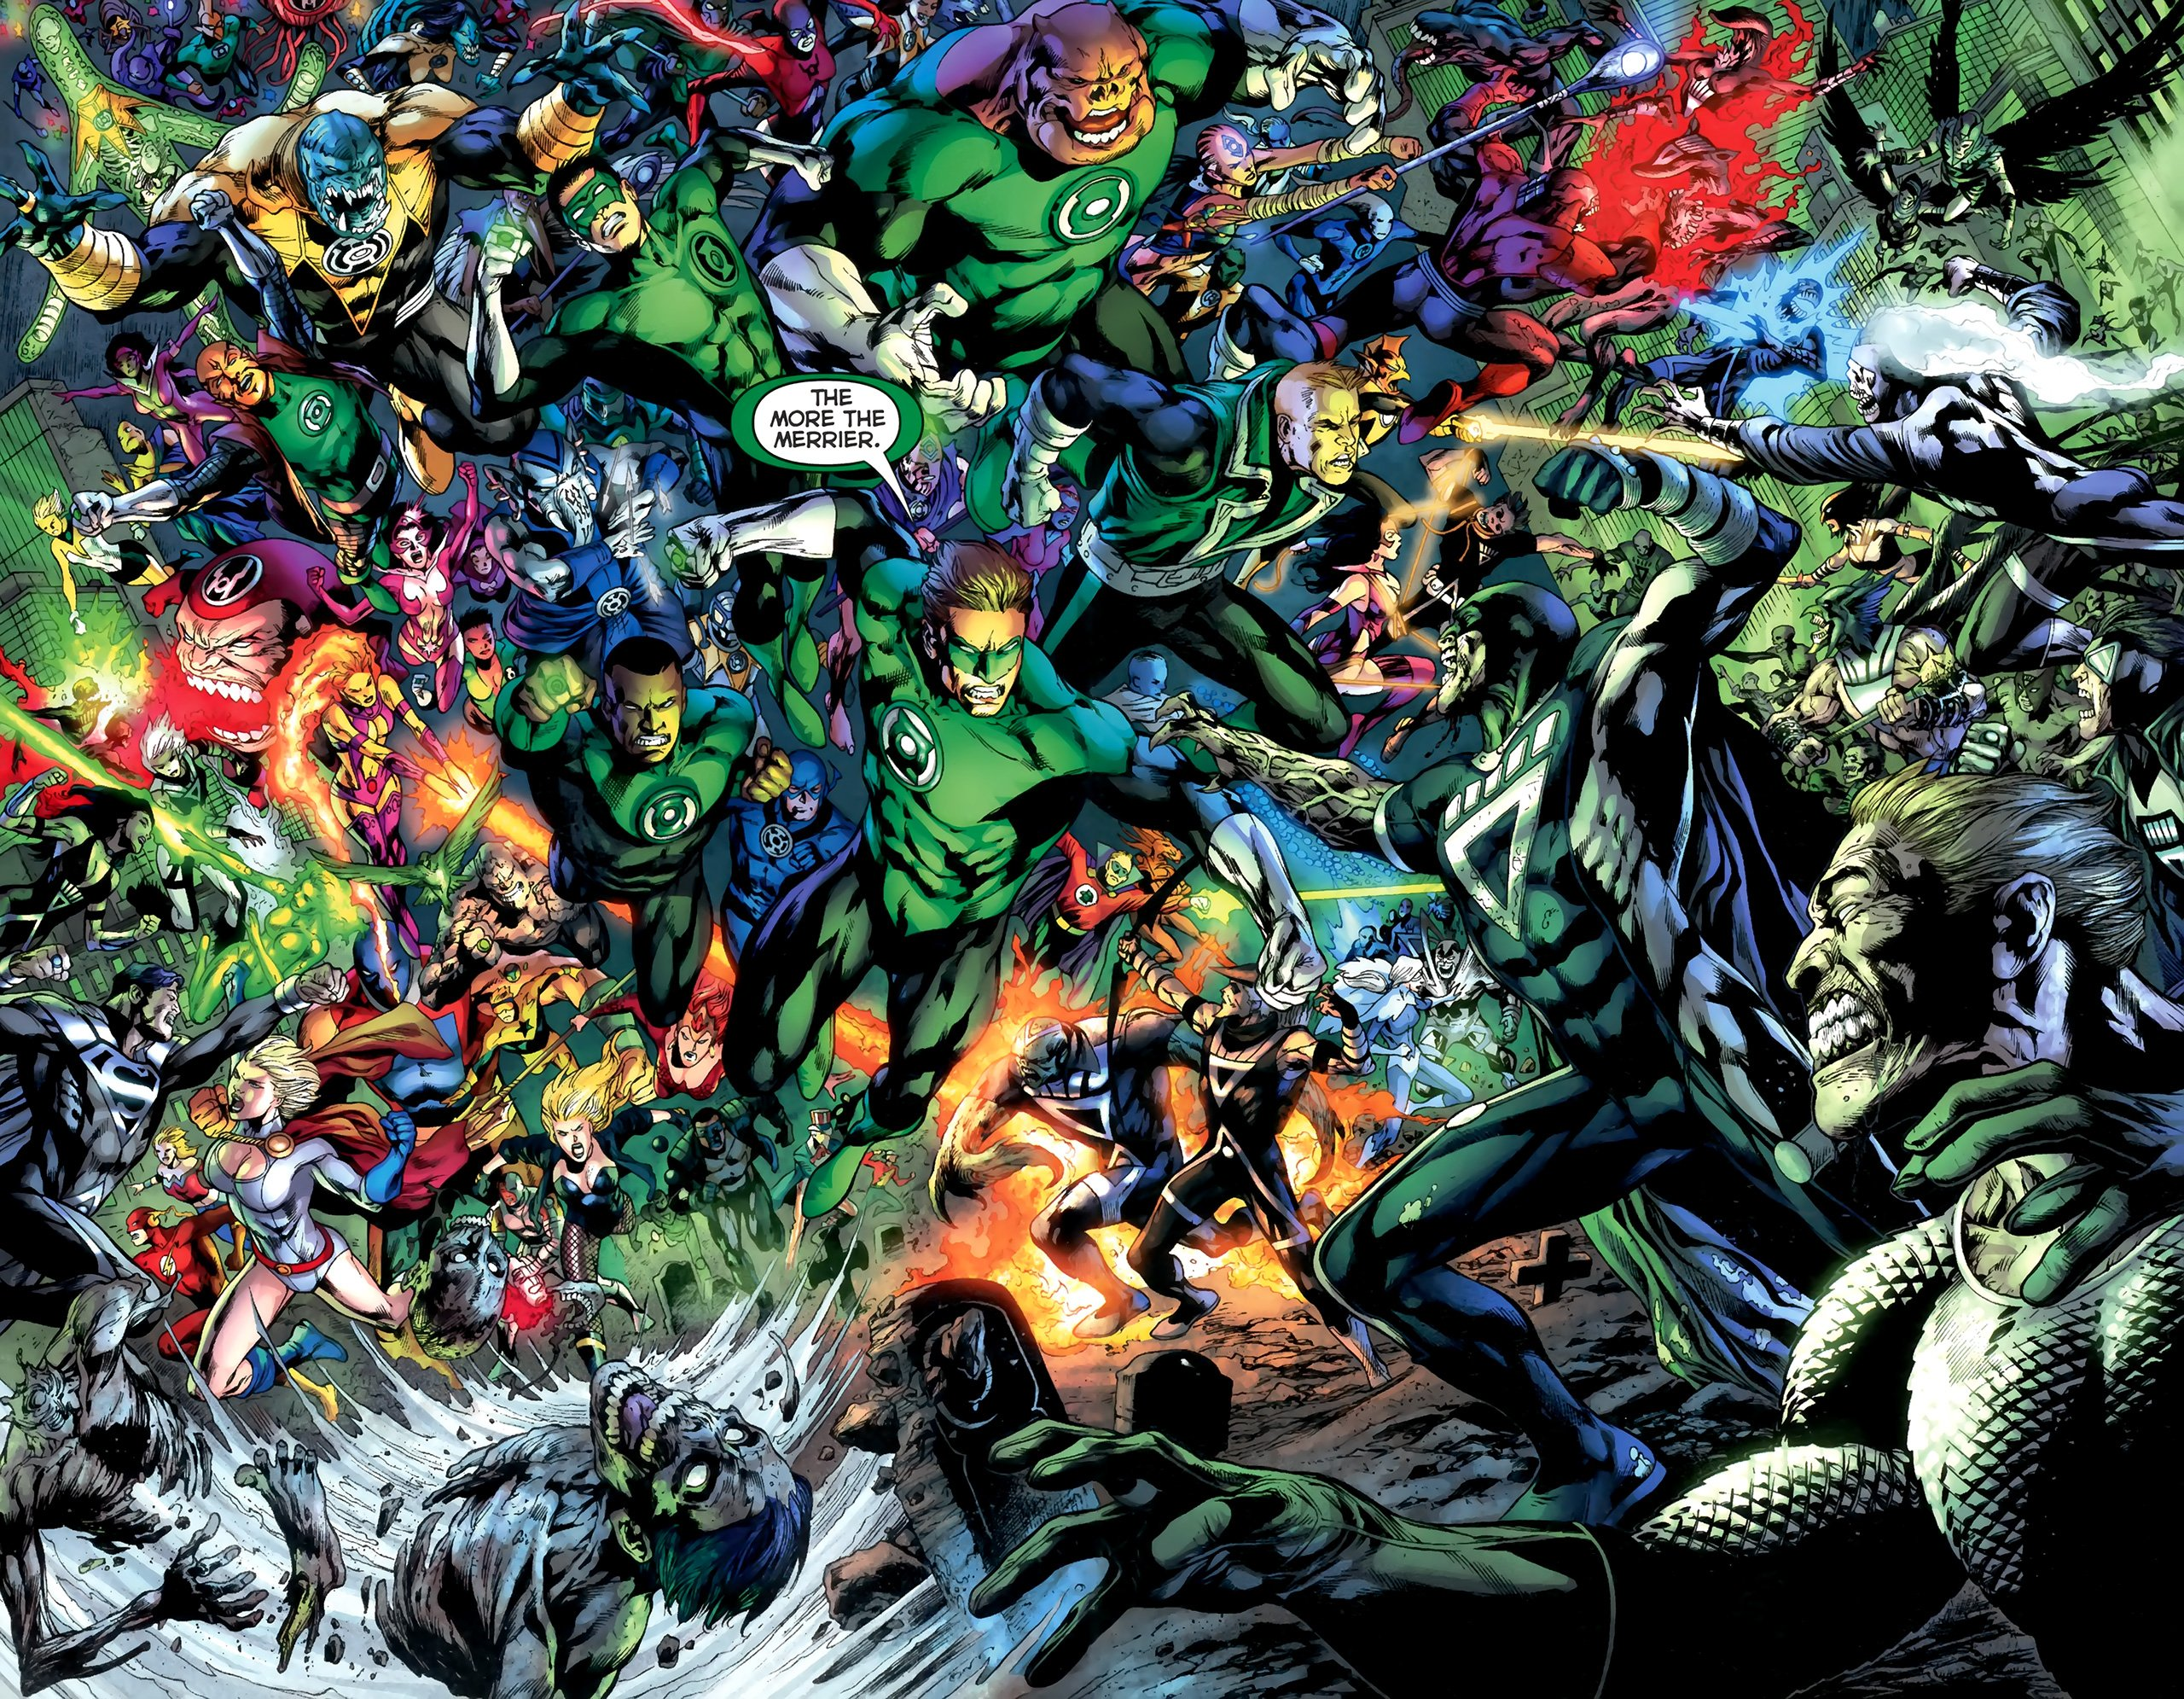 Explore the Collection Green Lantern Comics Green Lantern Corps 403119 2560x1991